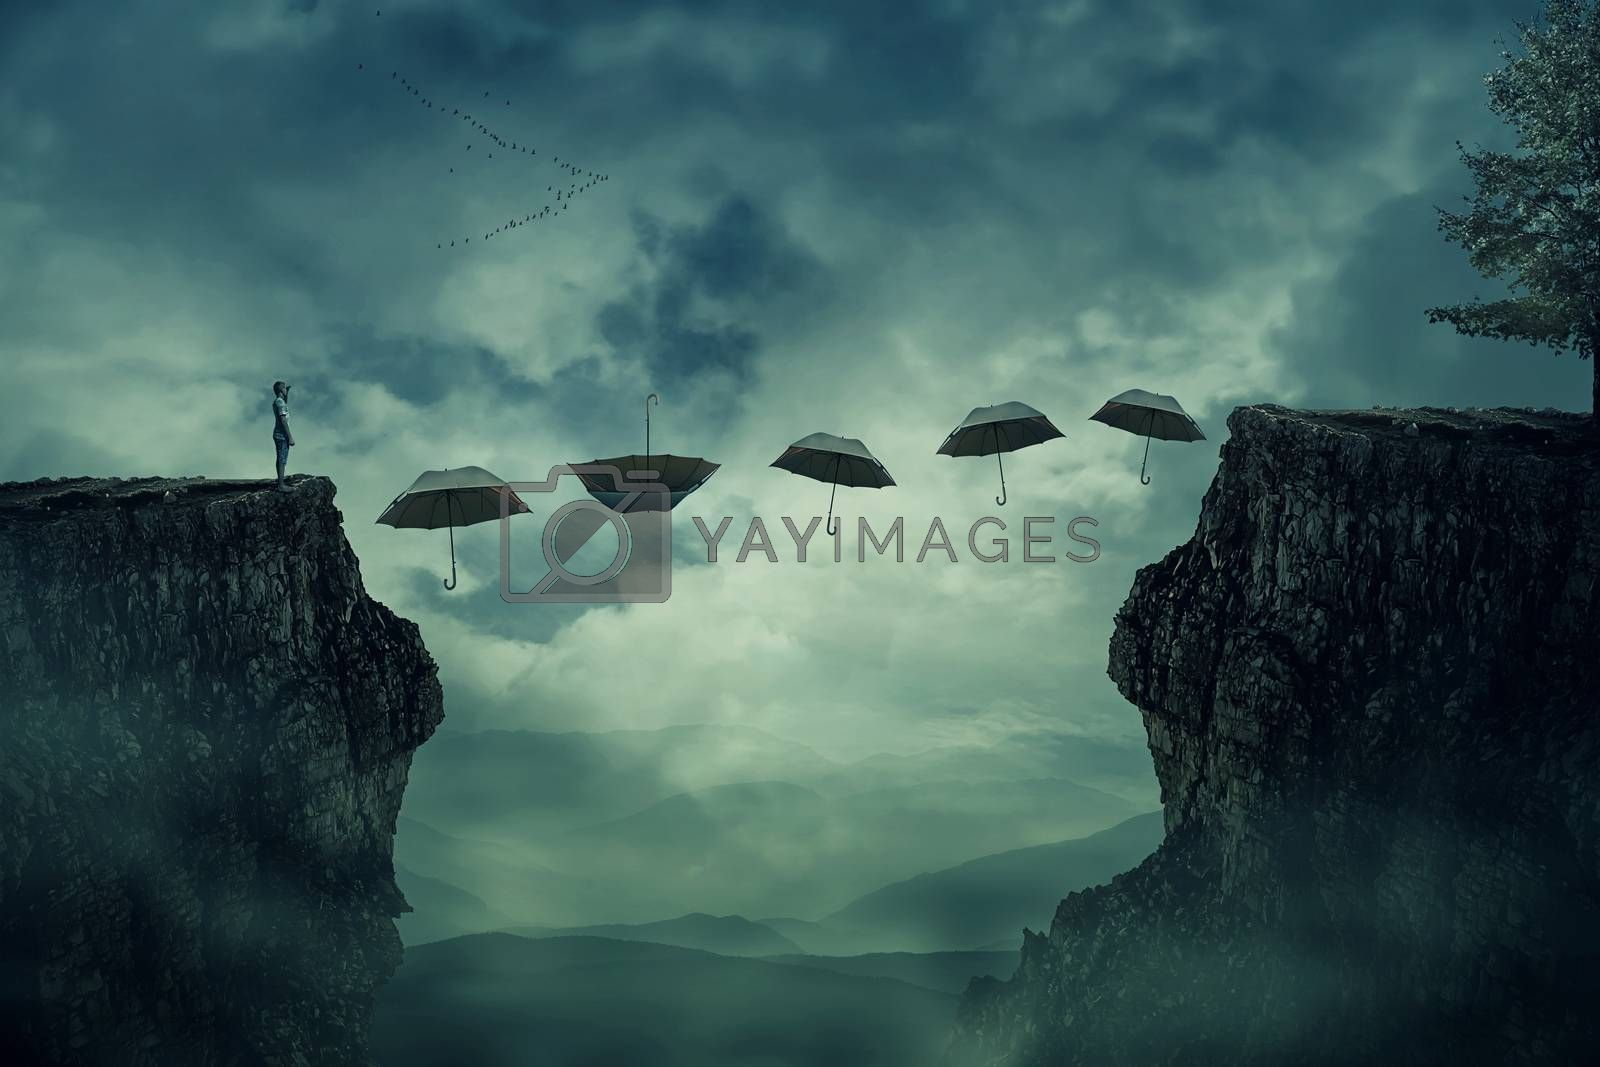 Young boy standing on the peak of a cliff try to pass over valley to another side on a path way of flying umbrellas. The pursuit of happiness and success concept.